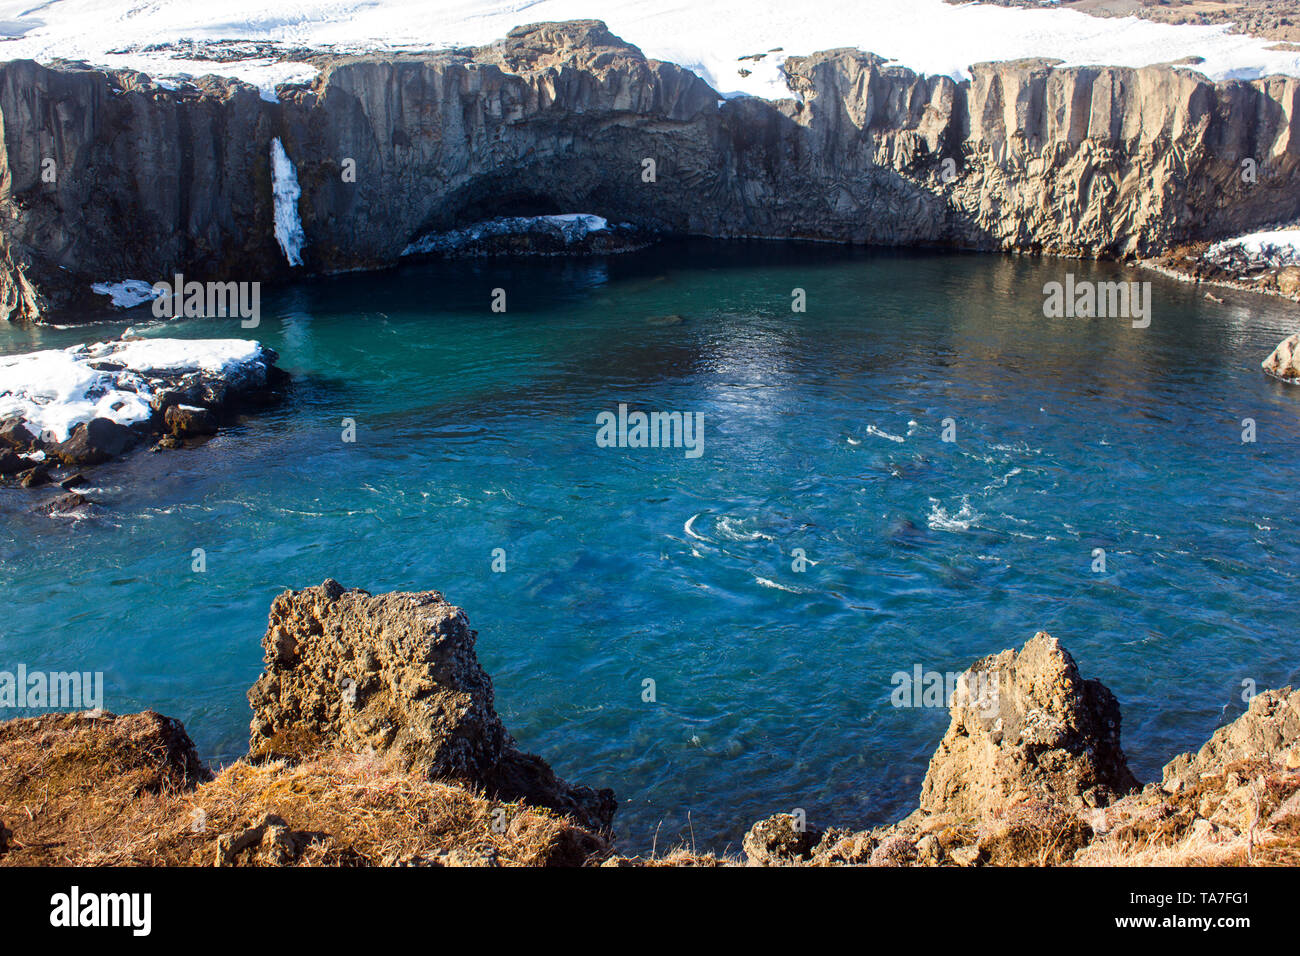 Columnar basalt formation over turquoise water with sunny weather in iceland - Stock Image